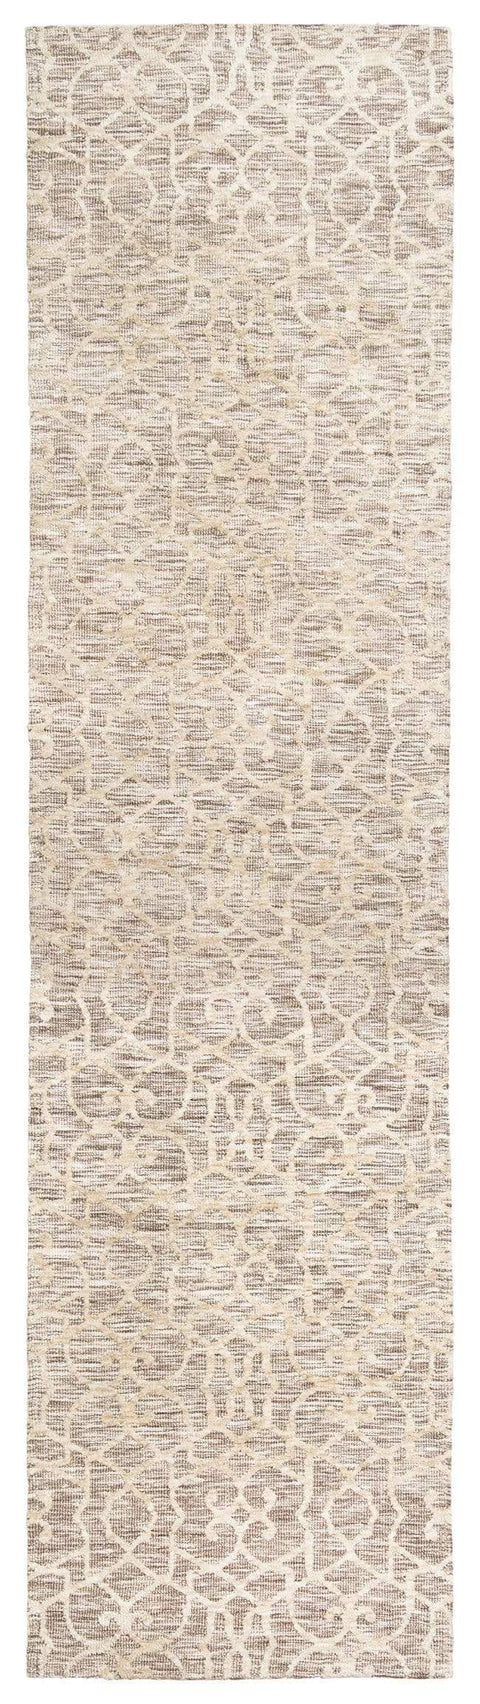 Tori Cream Brown and Ivory Textured Tribal Runner Rug